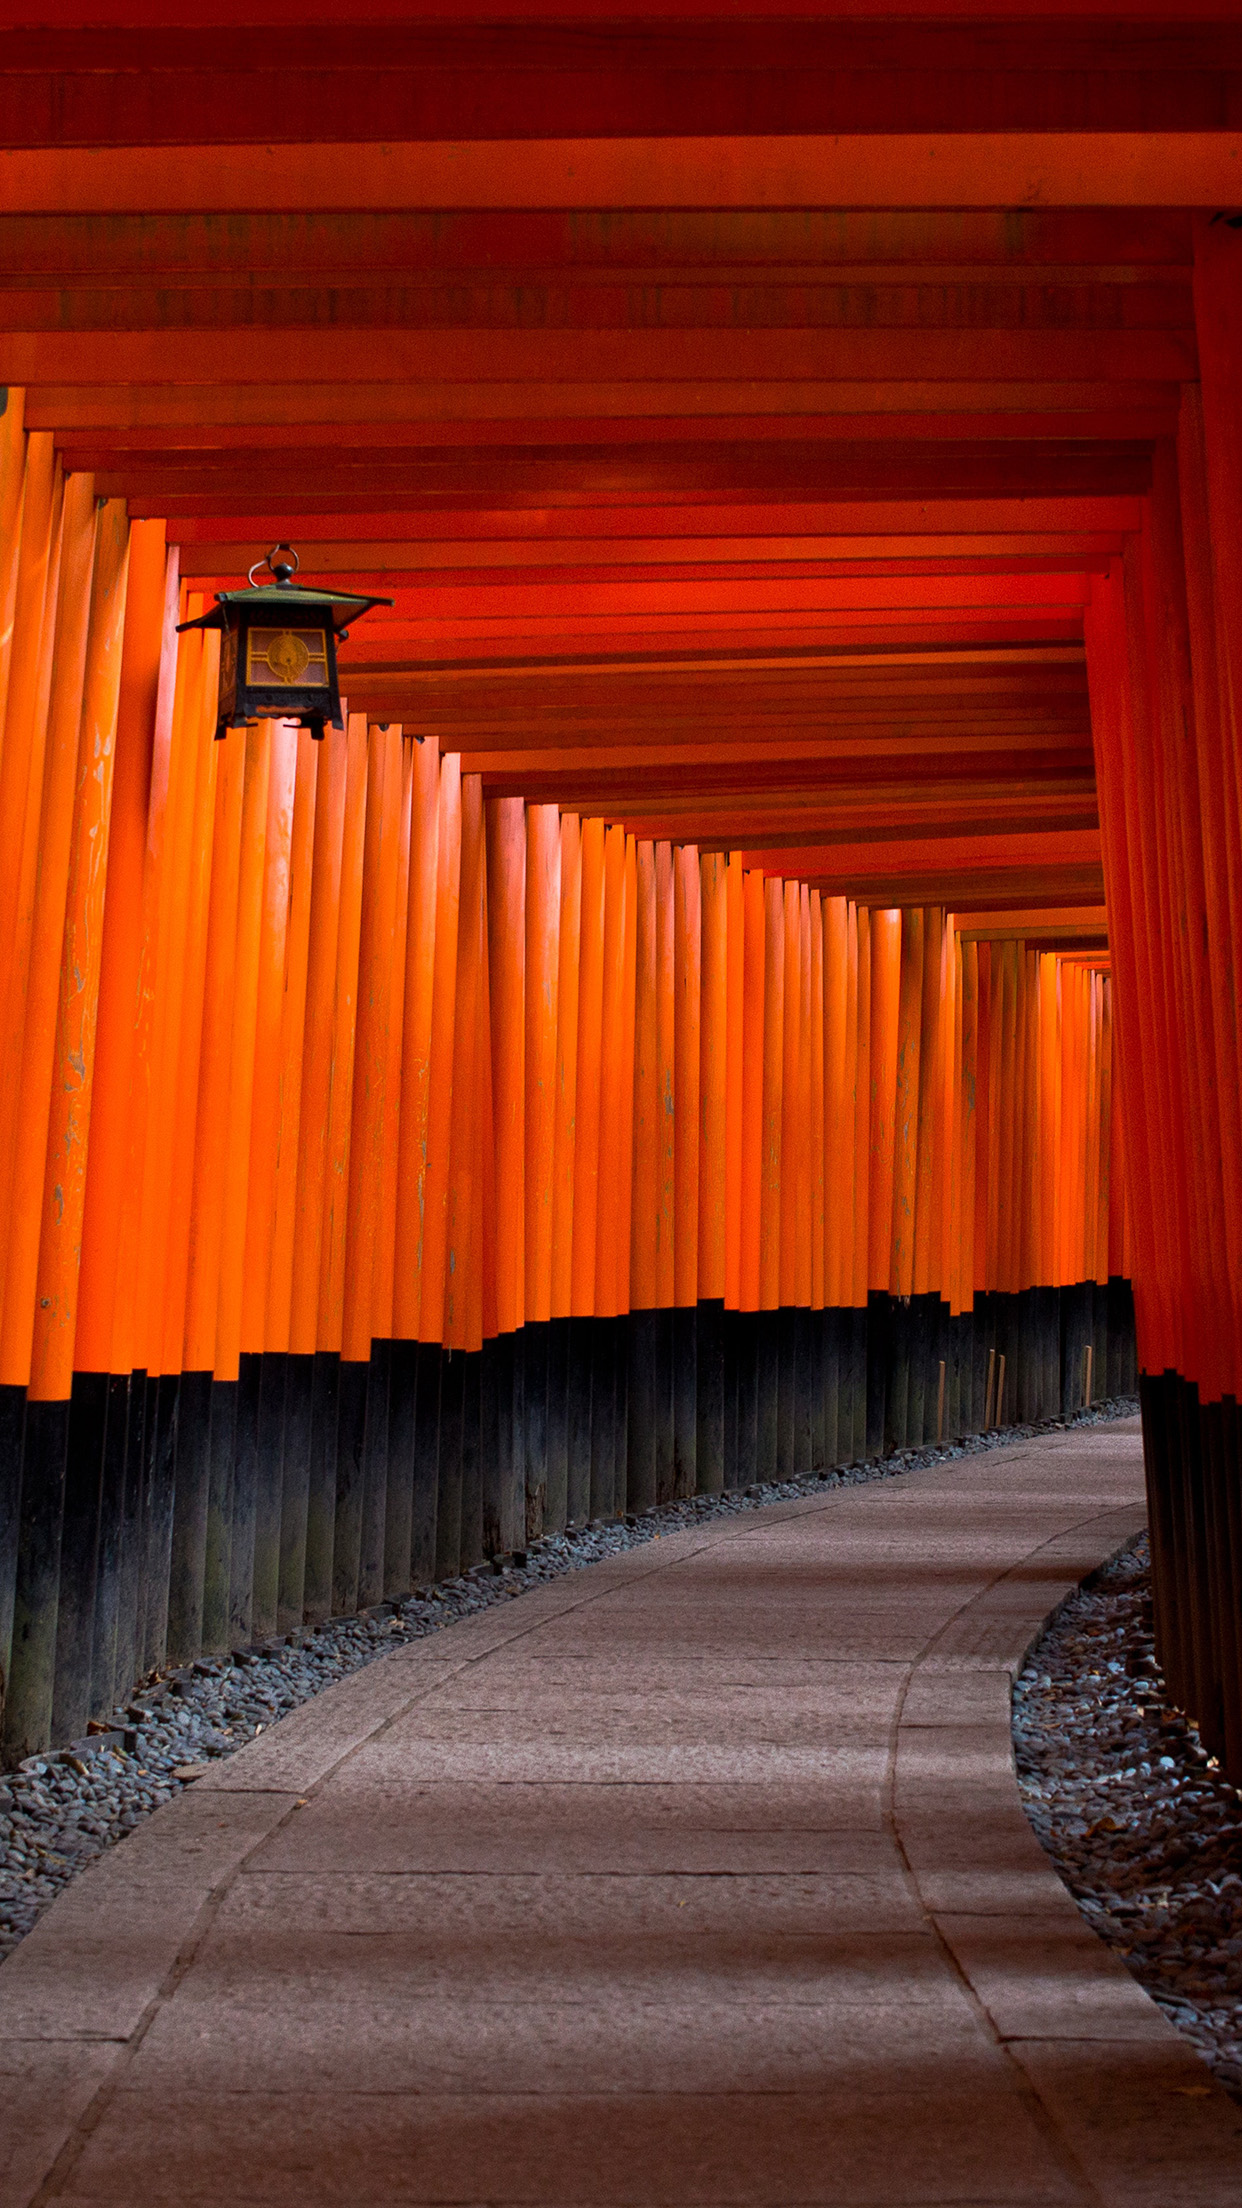 Oc56 Japan Architecture Red Nature Wallpaper